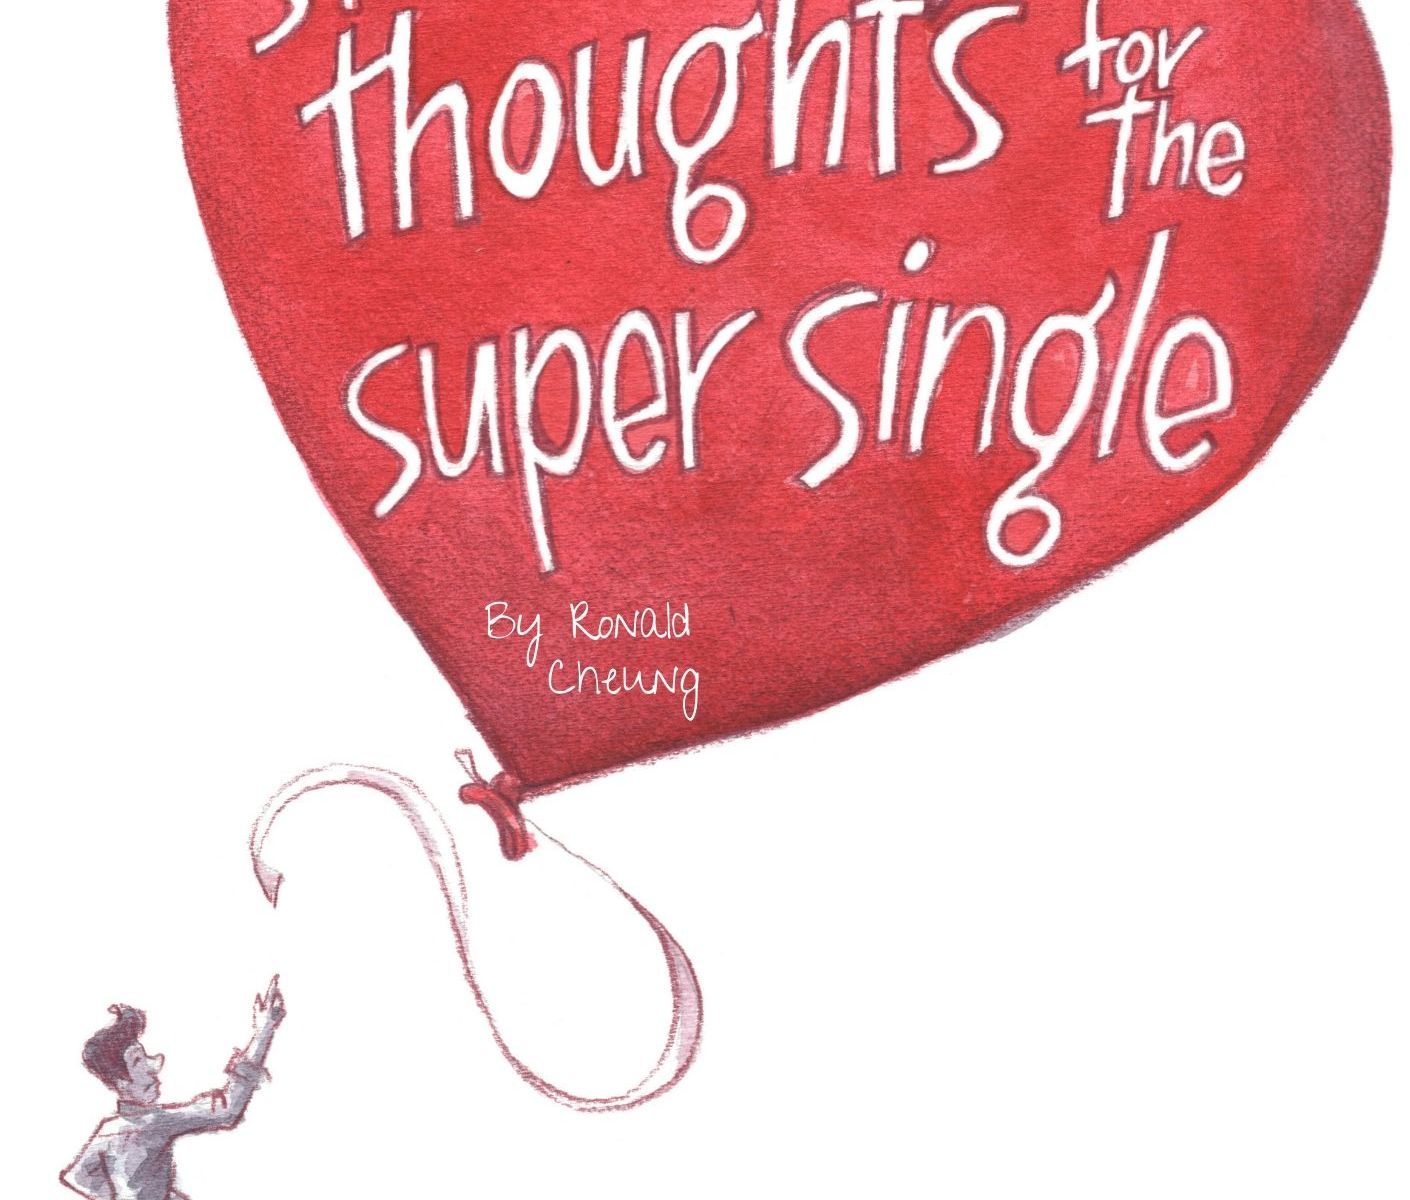 Book Cover for Small Thoughts For The Super Single